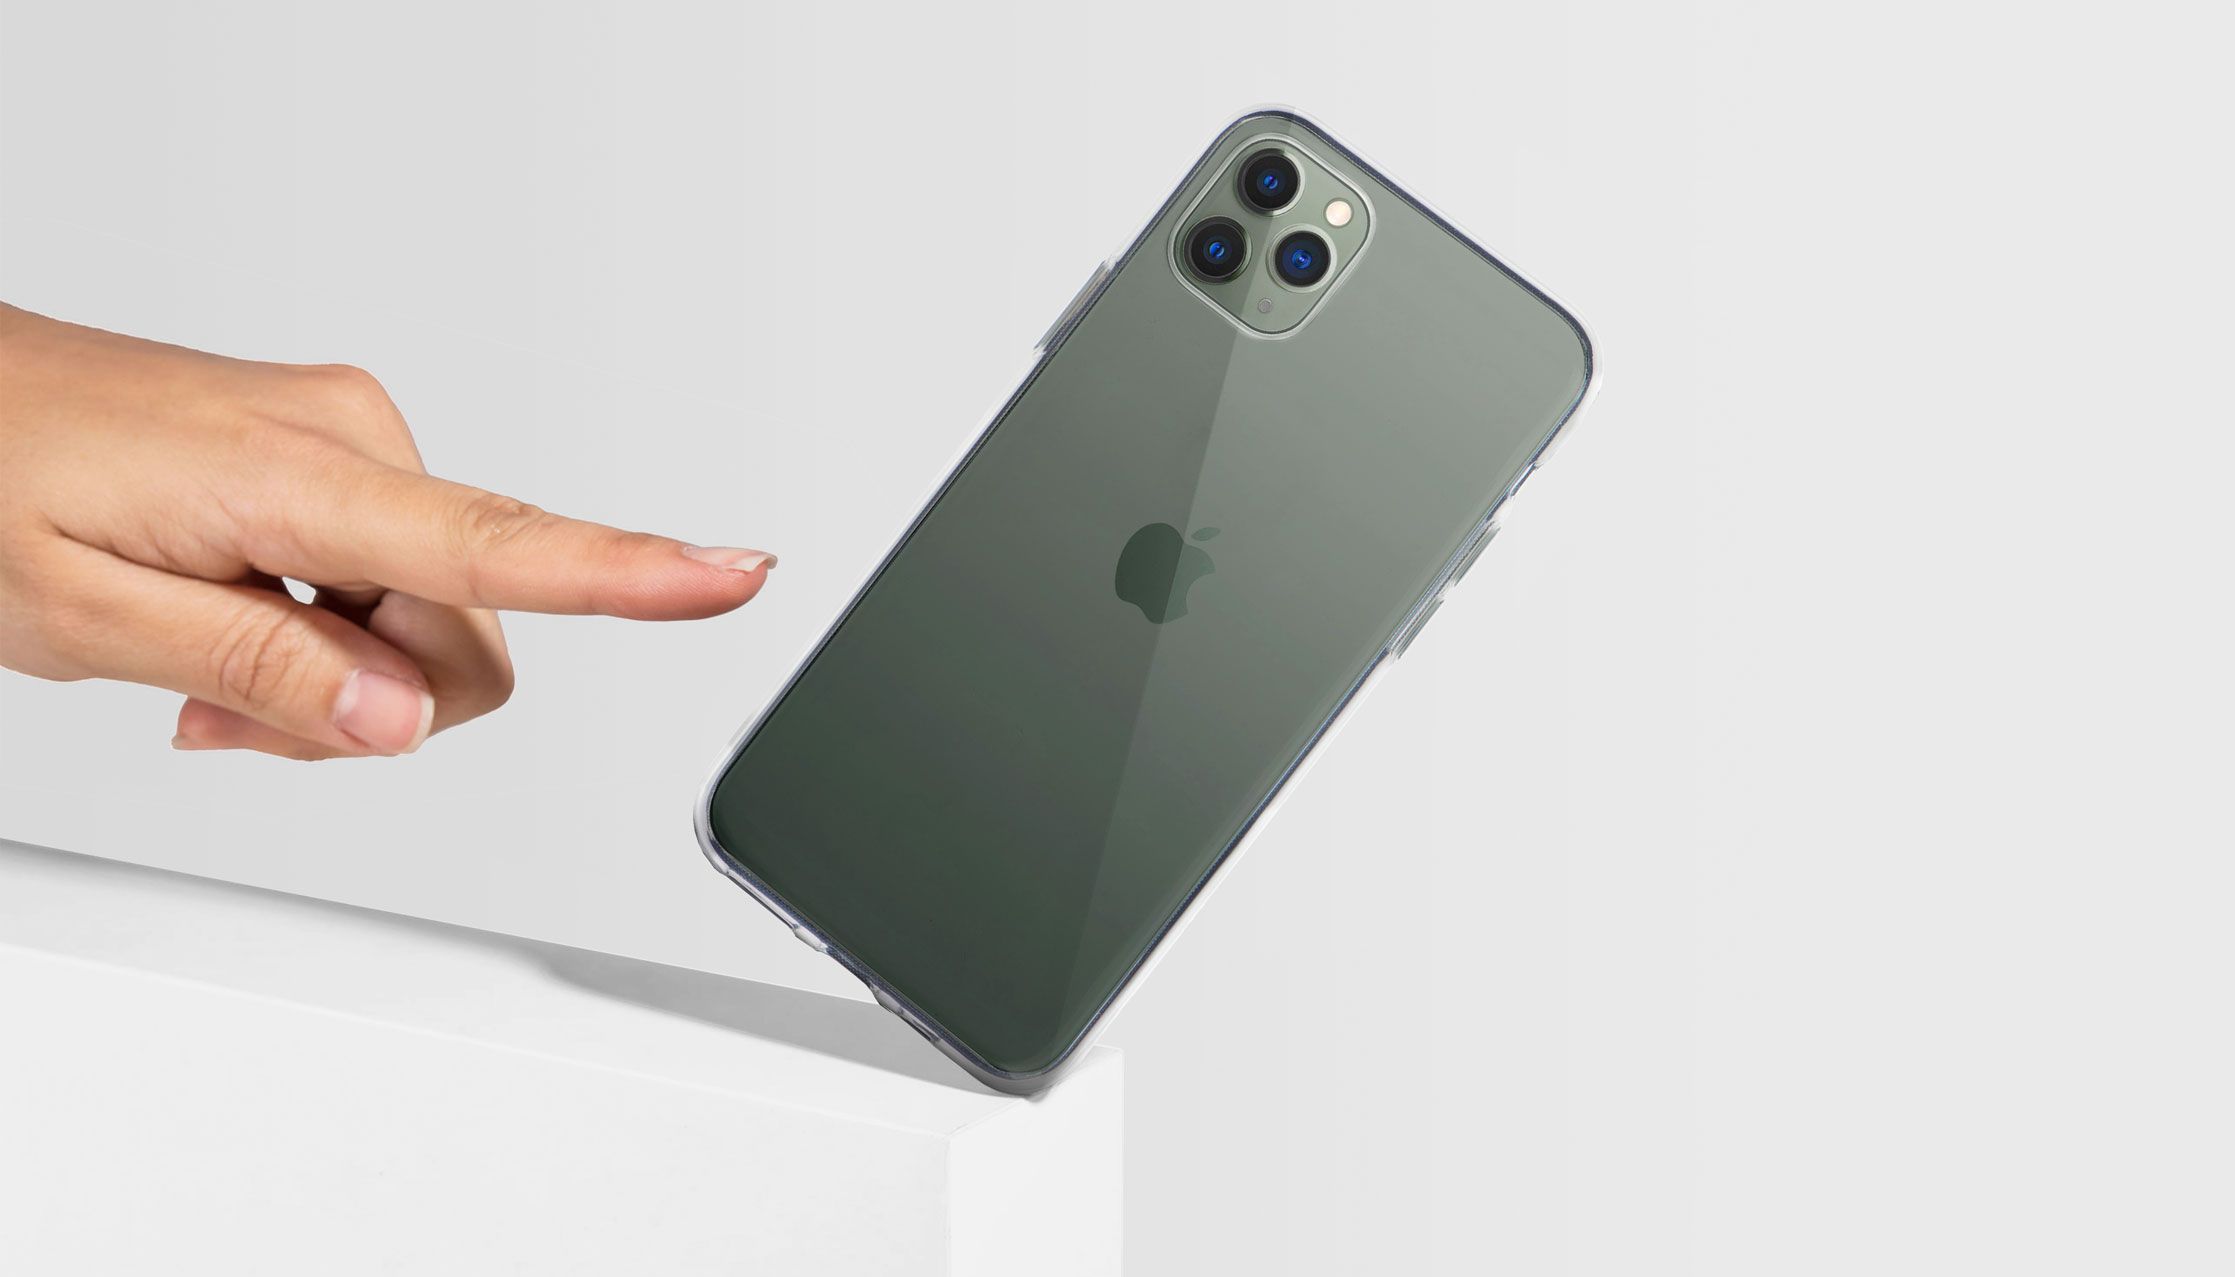 Totallee\u0027s super thin iPhone 11, 11 Pro/Max cases are now